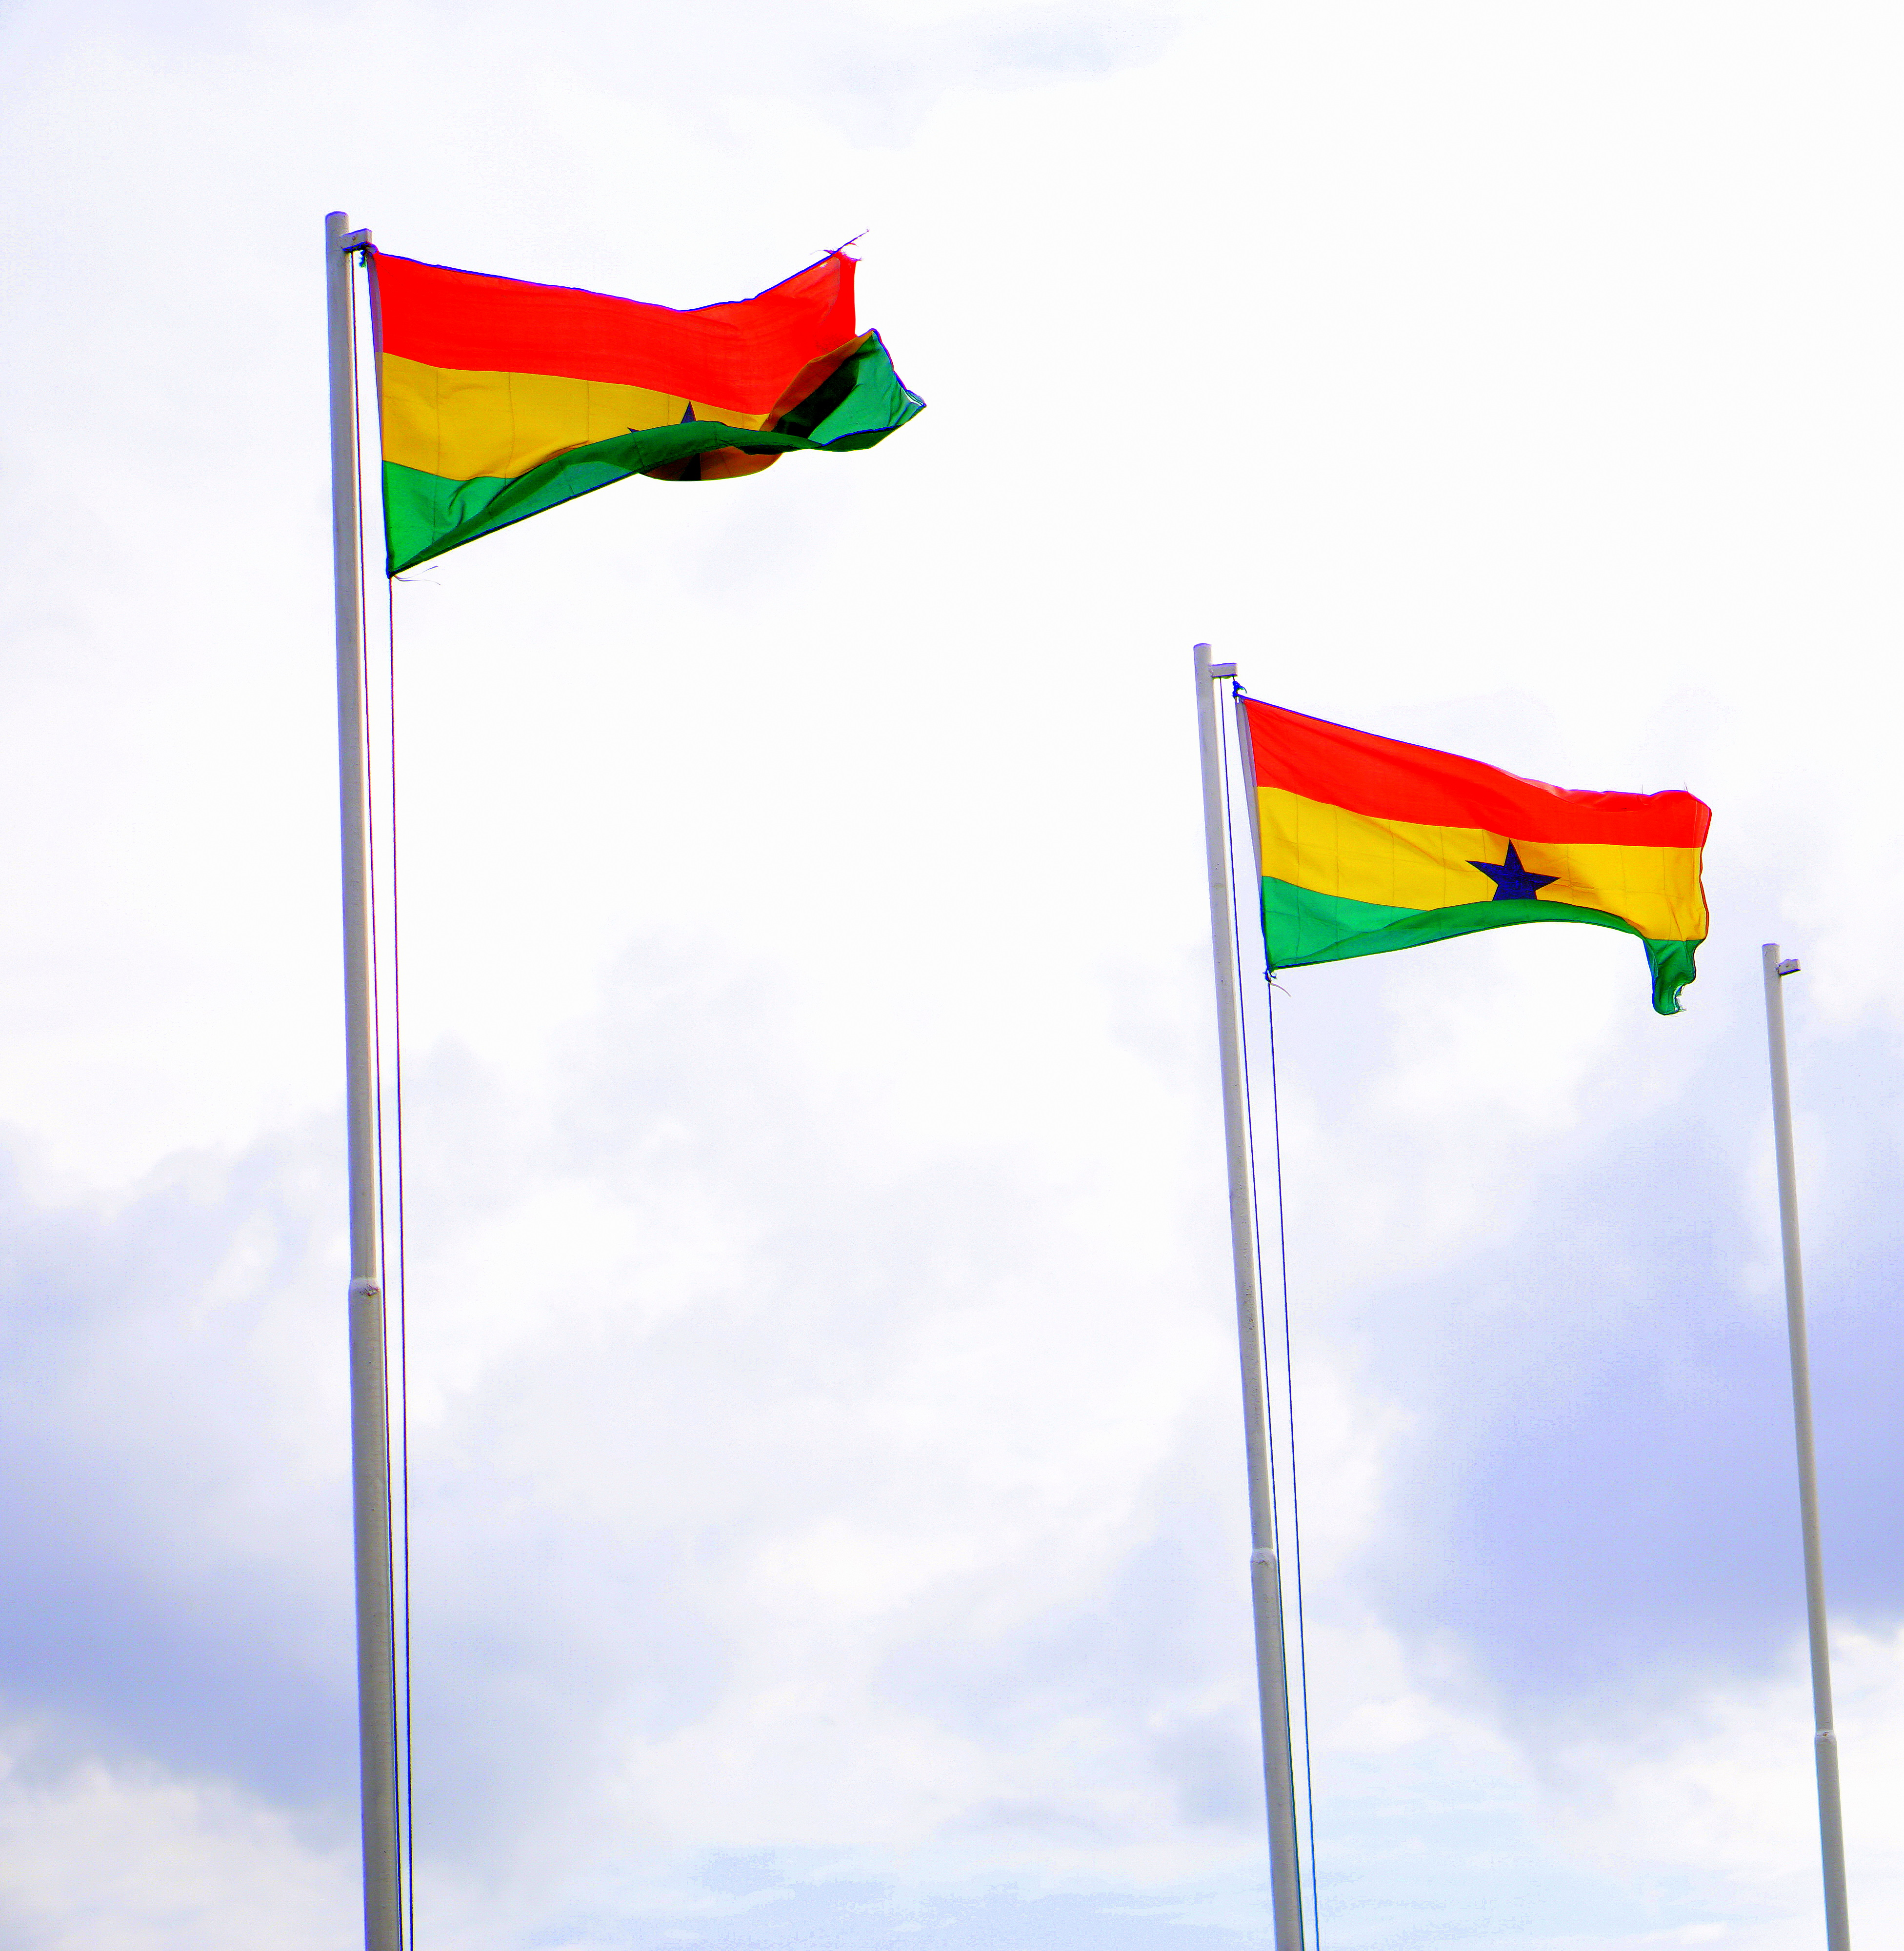 Picture of the Ghana flag on my road trip from Lagos to ghana by road